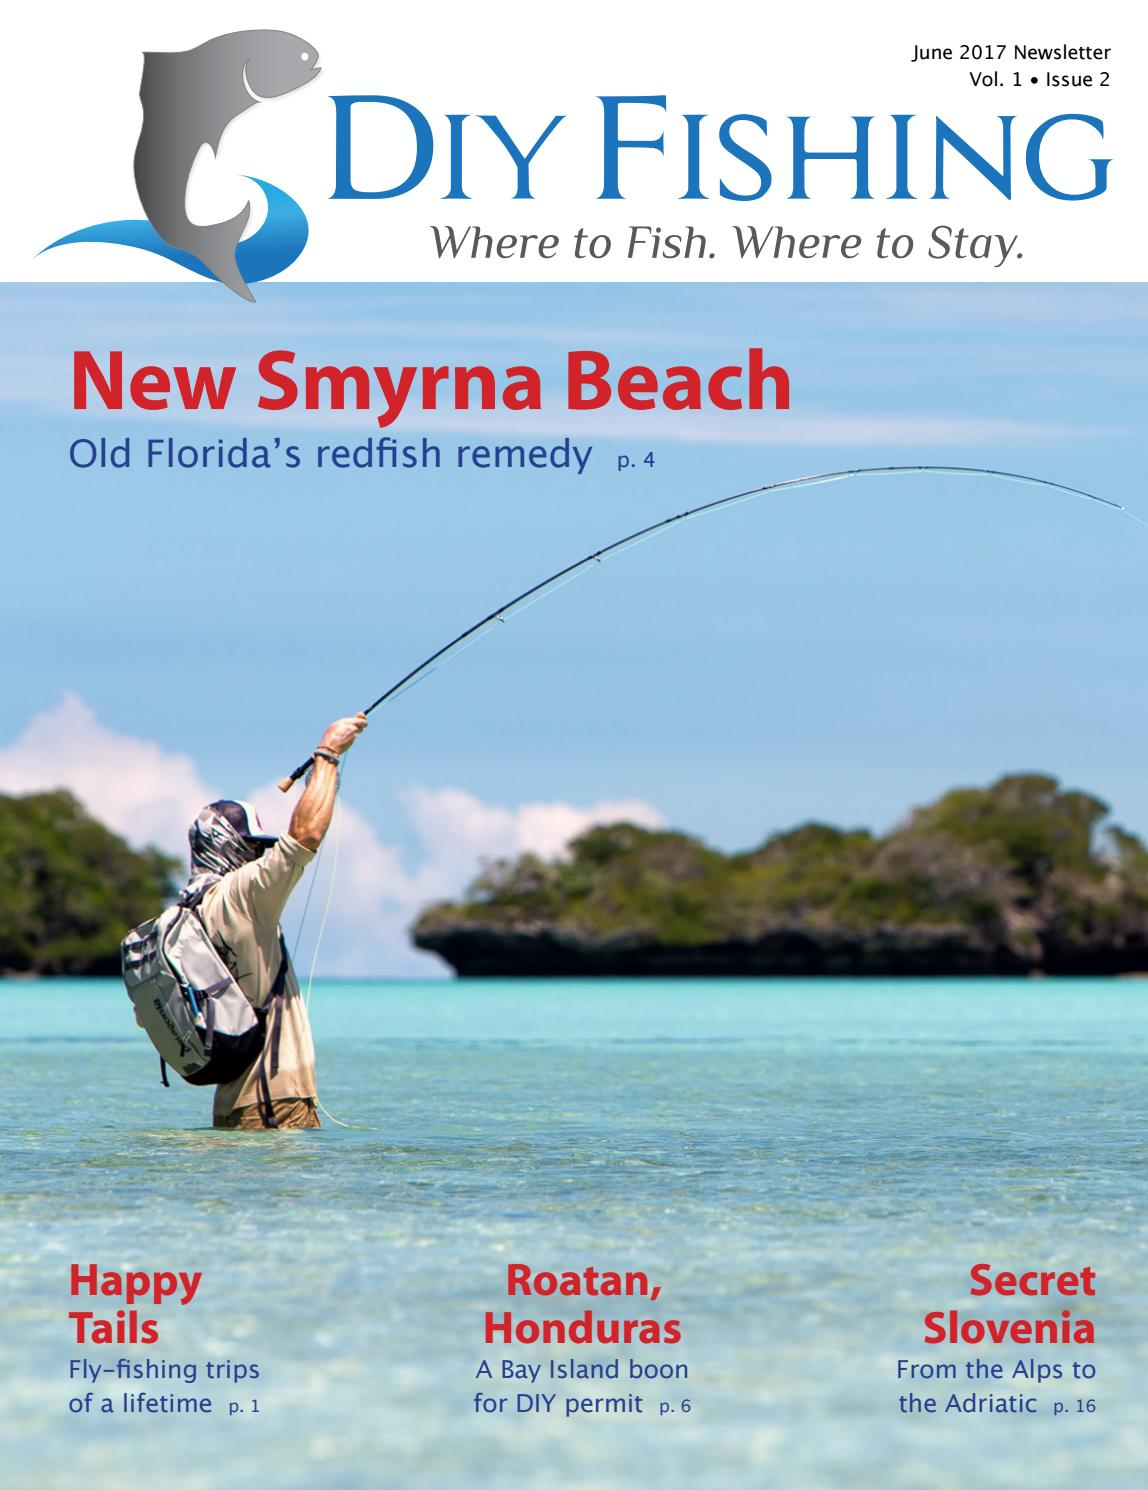 Diy fishing june 2017 by rod hamilton issuu for New smyrna beach fishing spots